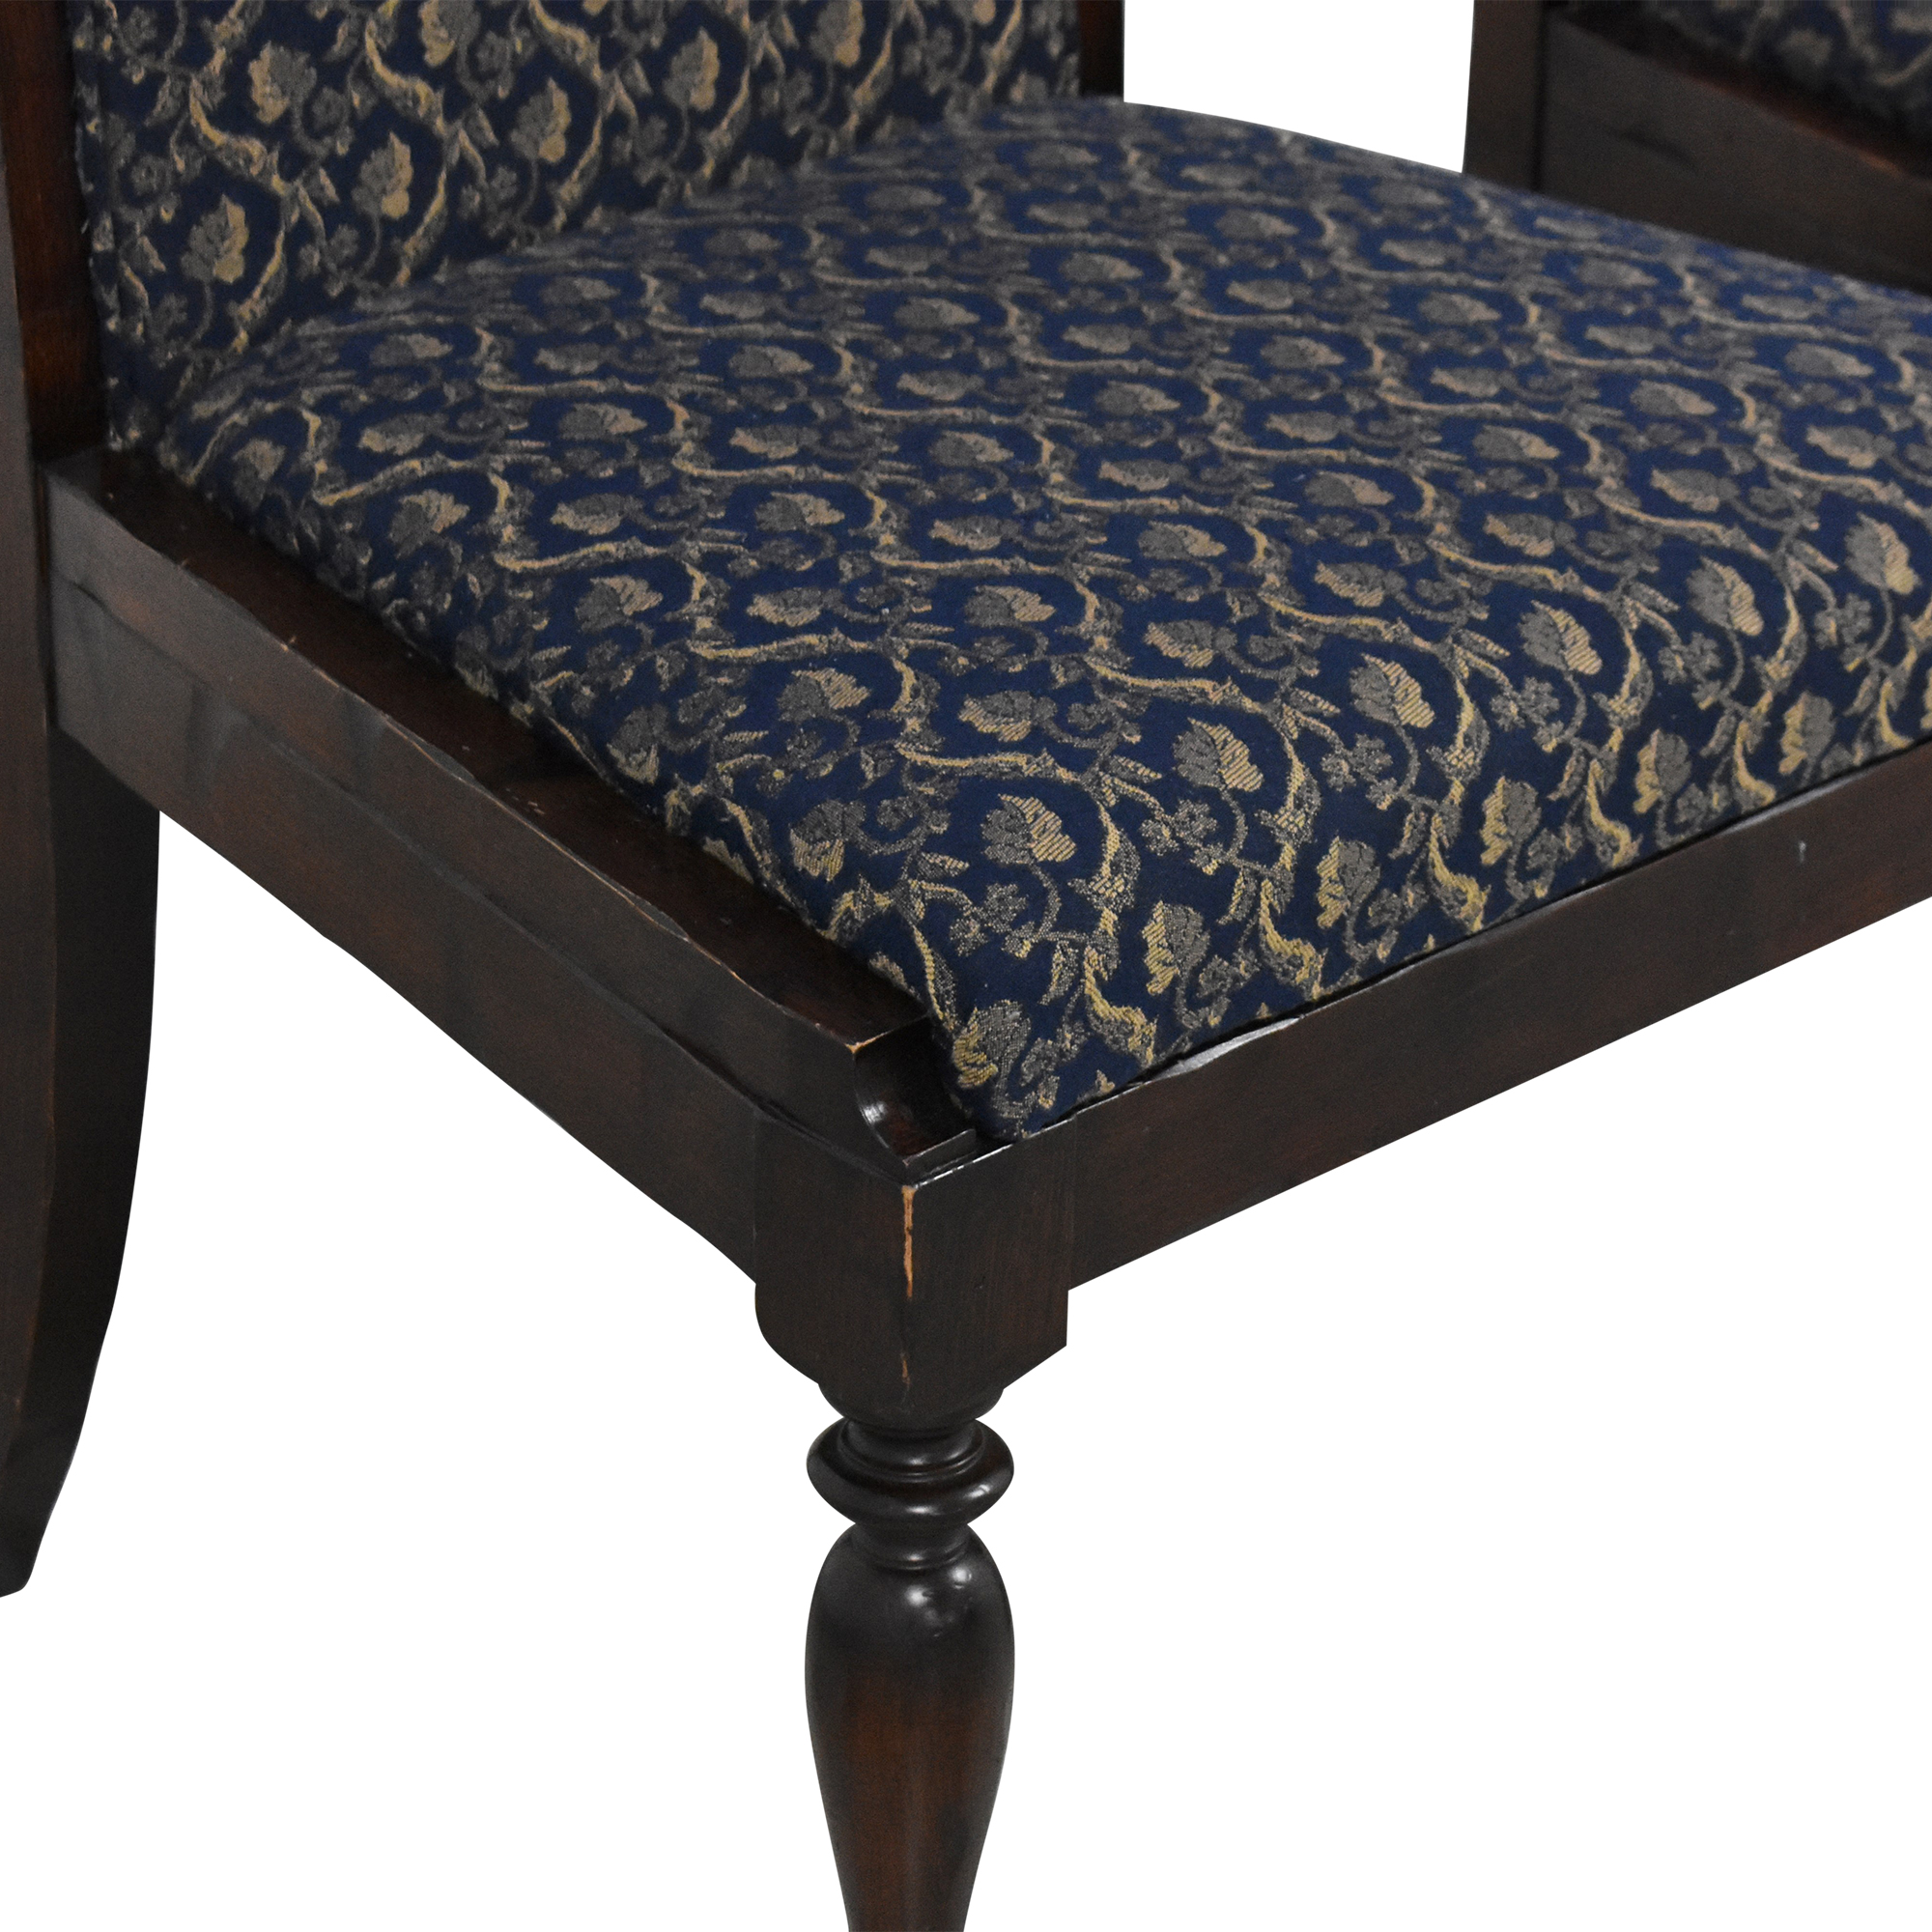 Sacchetto Fratelli Sacchetto Fratelli Upholstered High Back Dining Chairs coupon